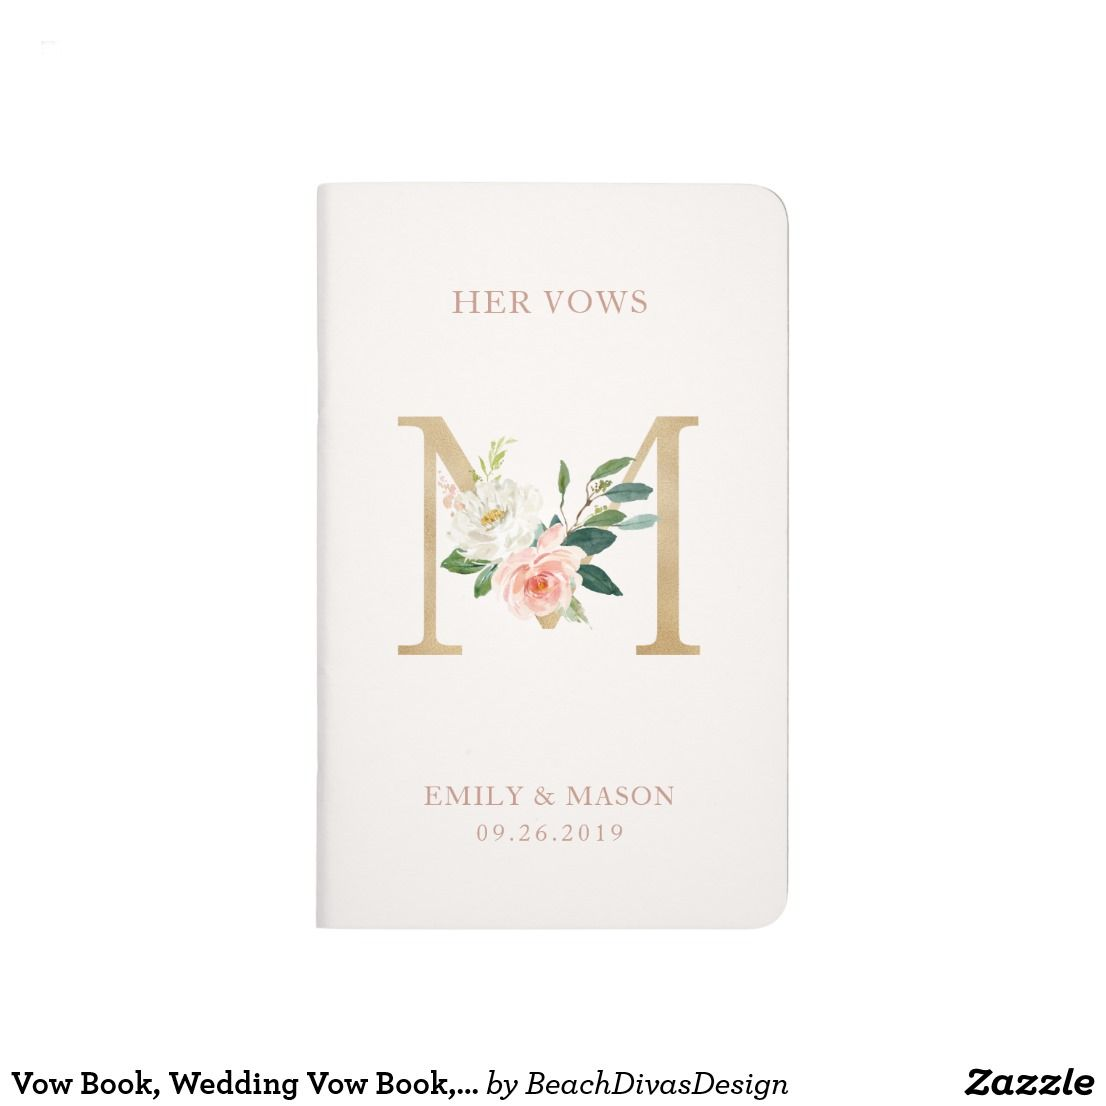 Vow Book Wedding Vow Book Letter M Journal Wedding Vow Books